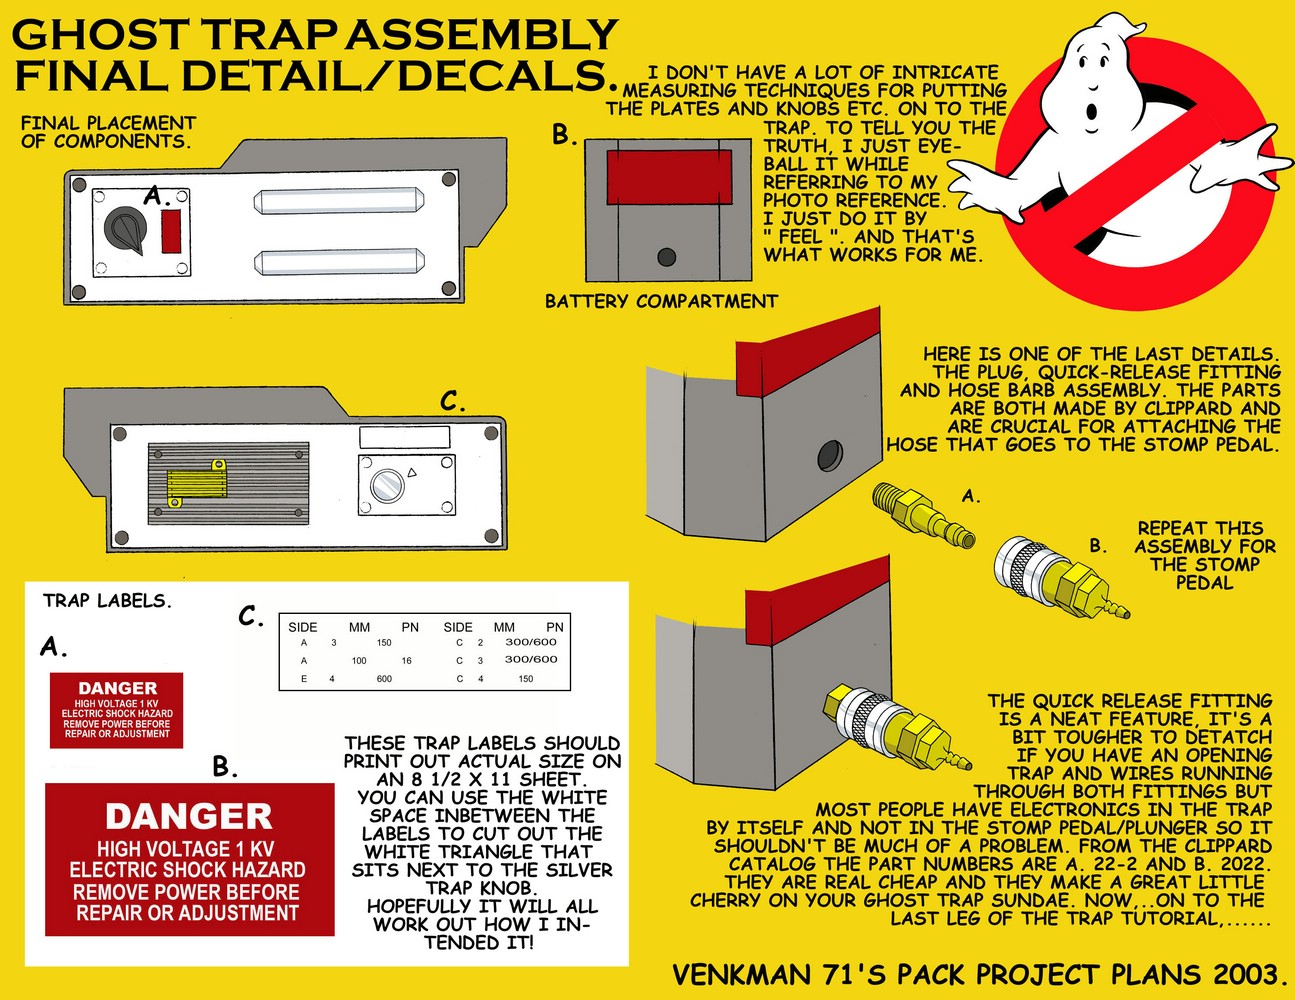 Where The Stickers Belong On The Pack Ghostbusters Fans